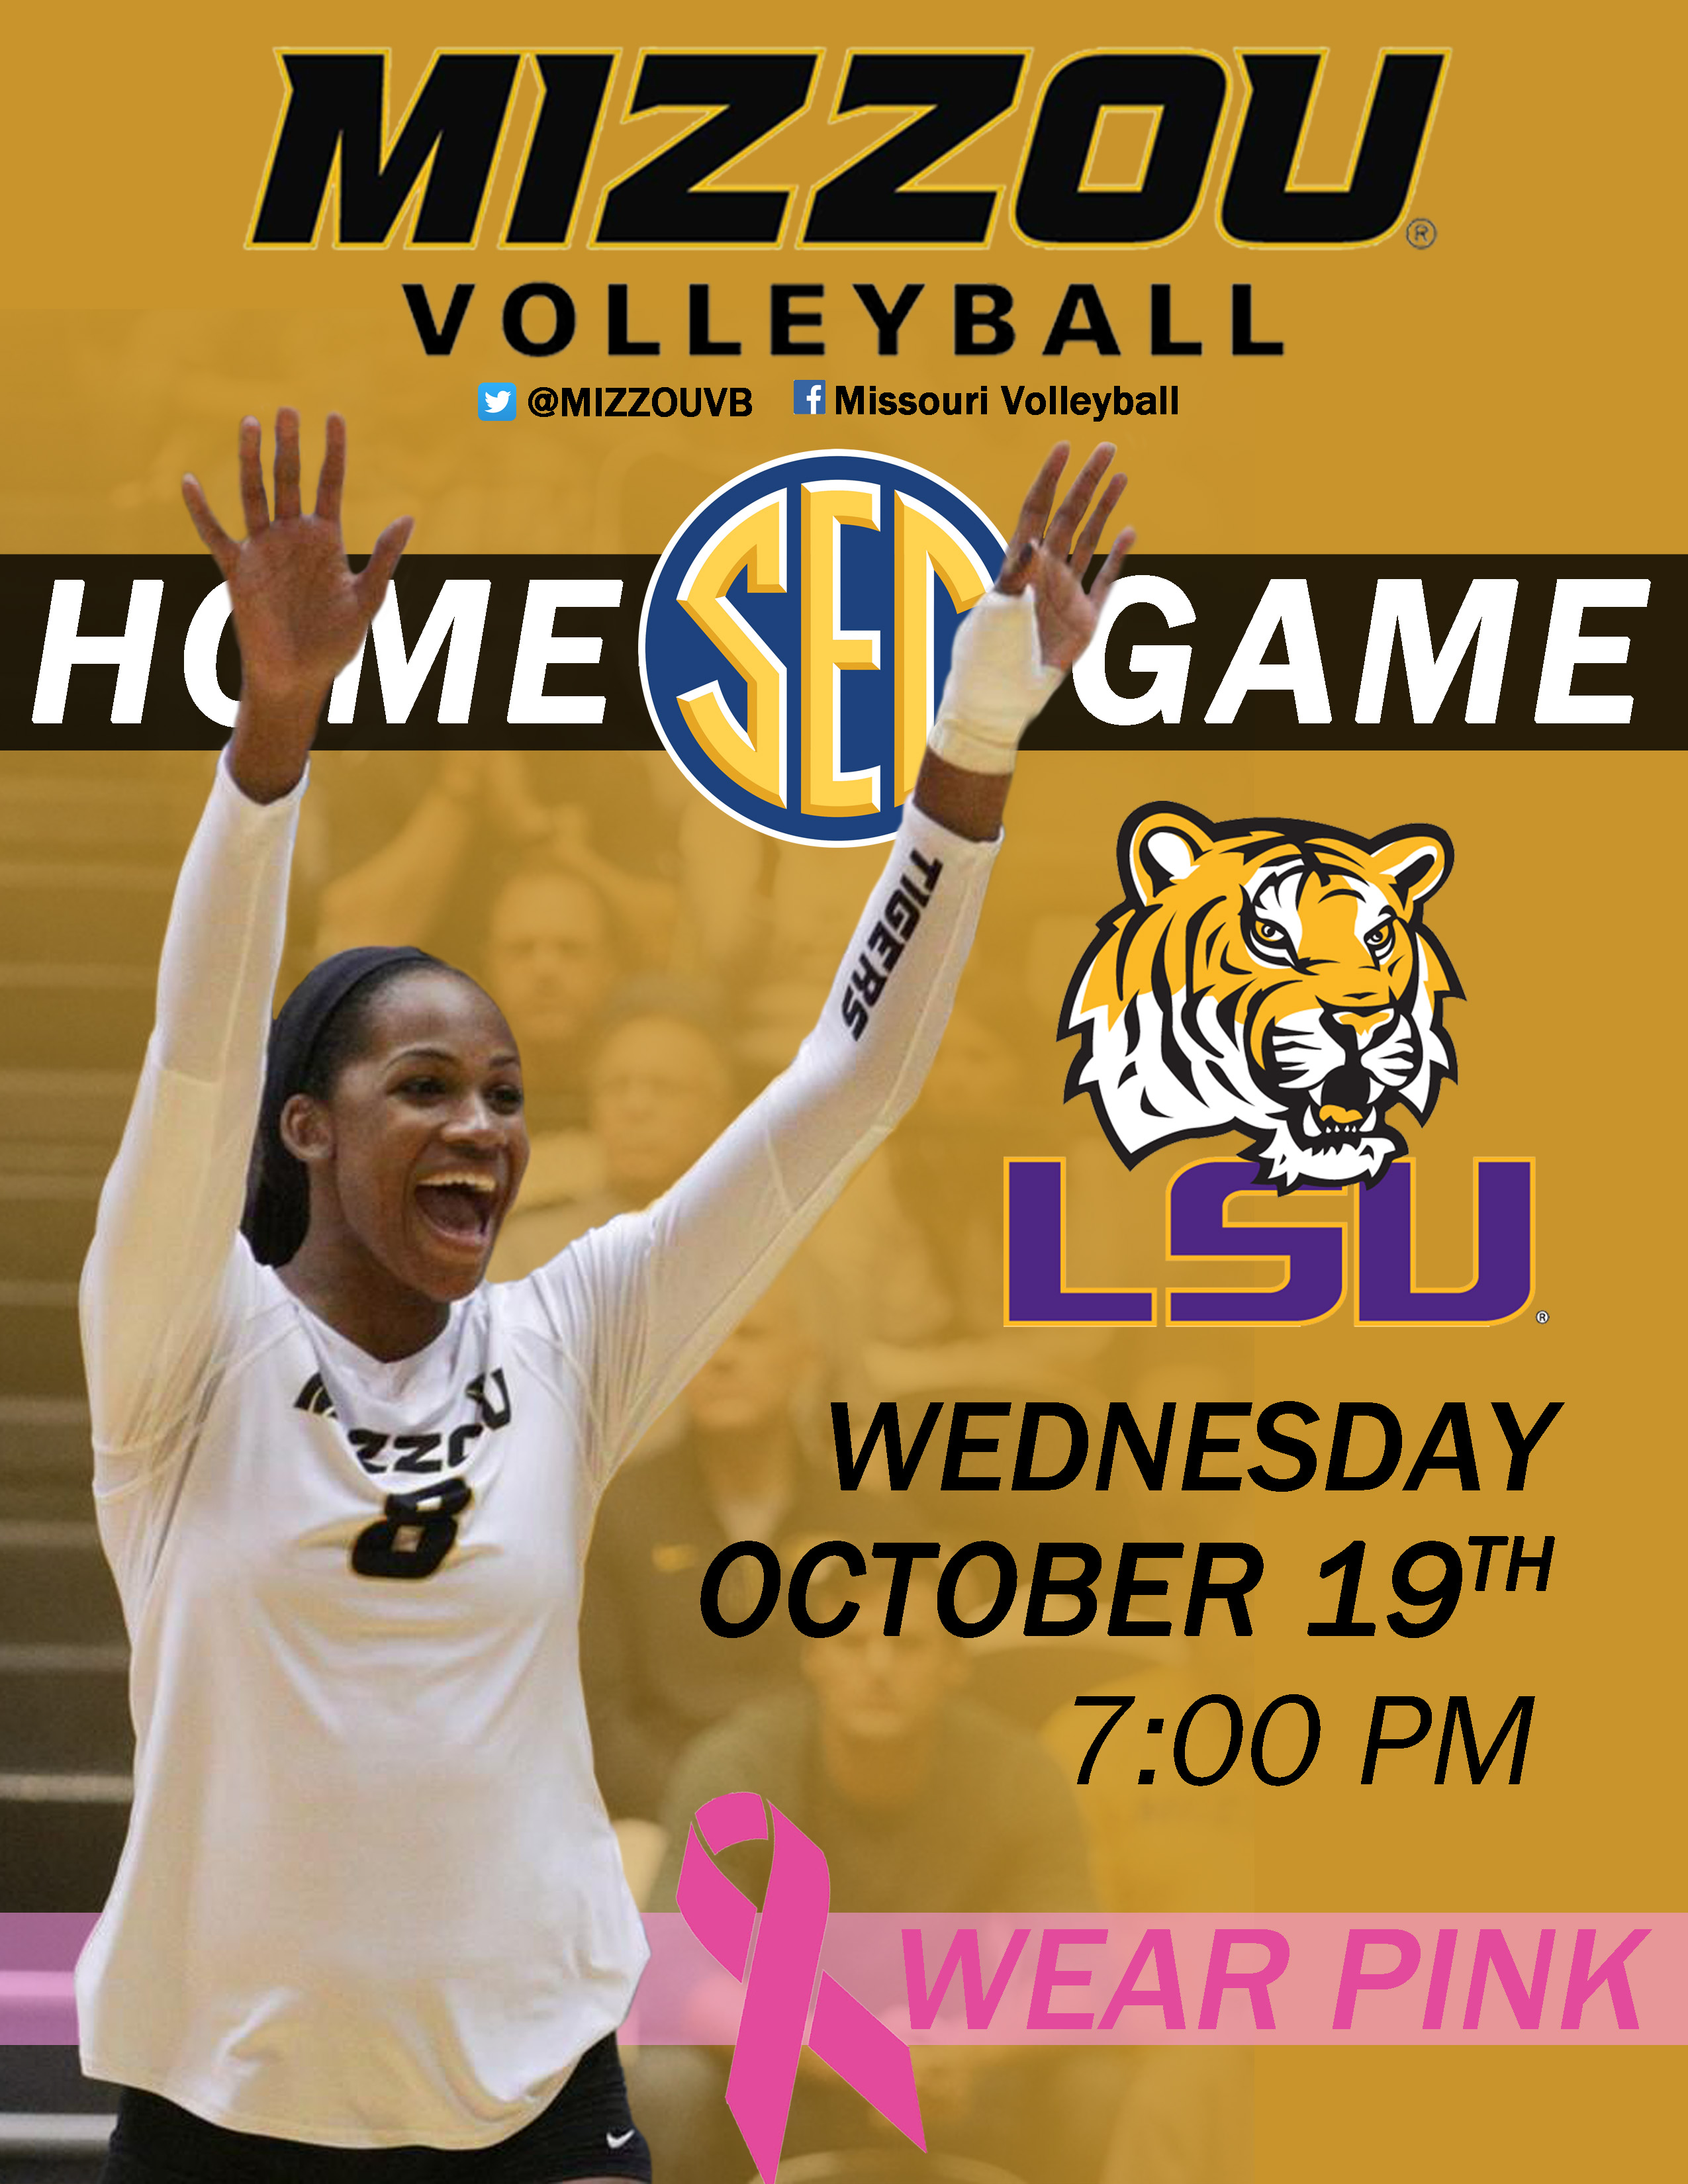 Mizzou Volleyball Email Flyer